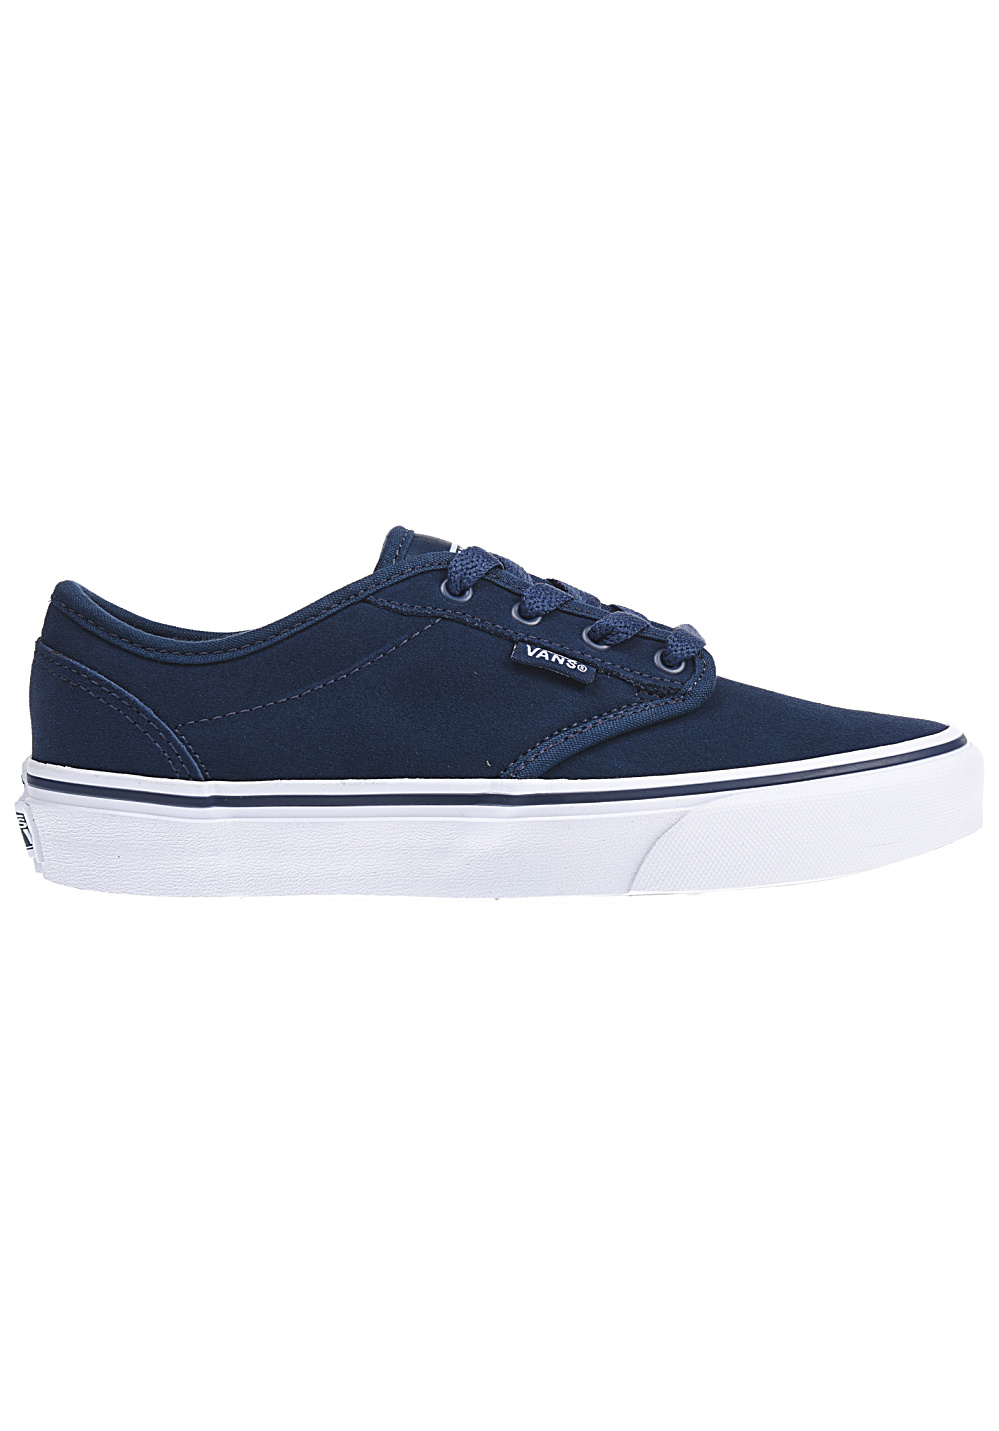 3cd4c72e2977 Vans Atwood - Sneakers - Blue - Planet Sports